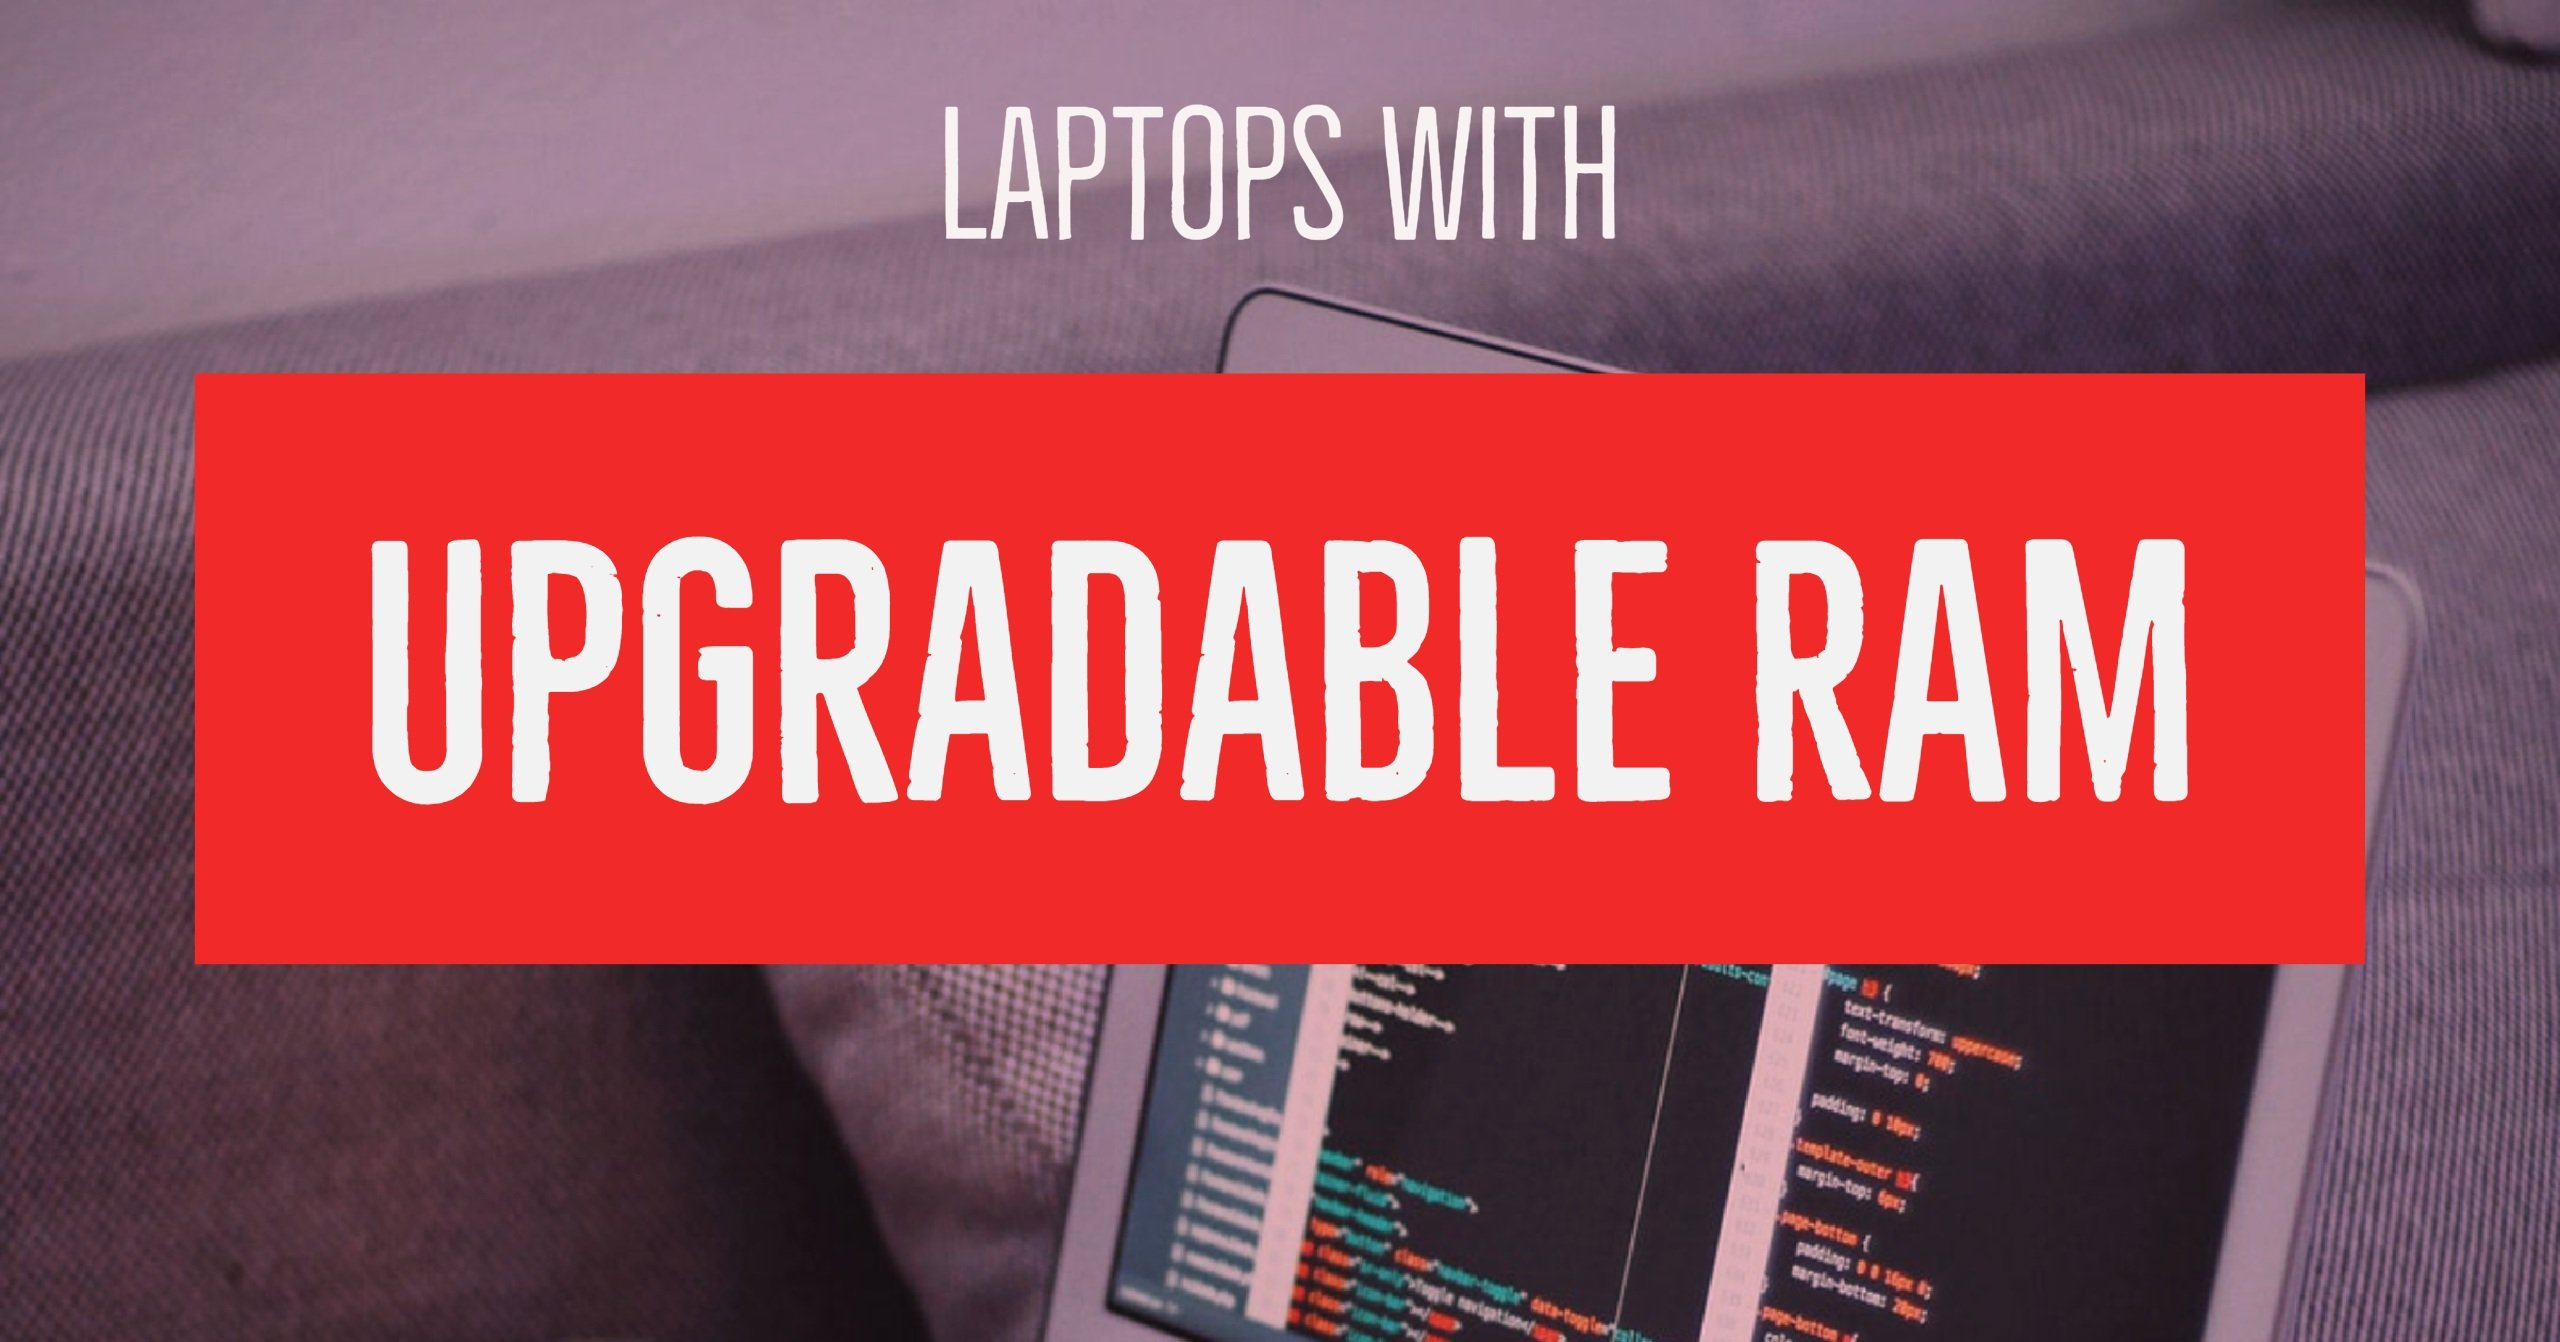 Laptops With Upgradable RAM